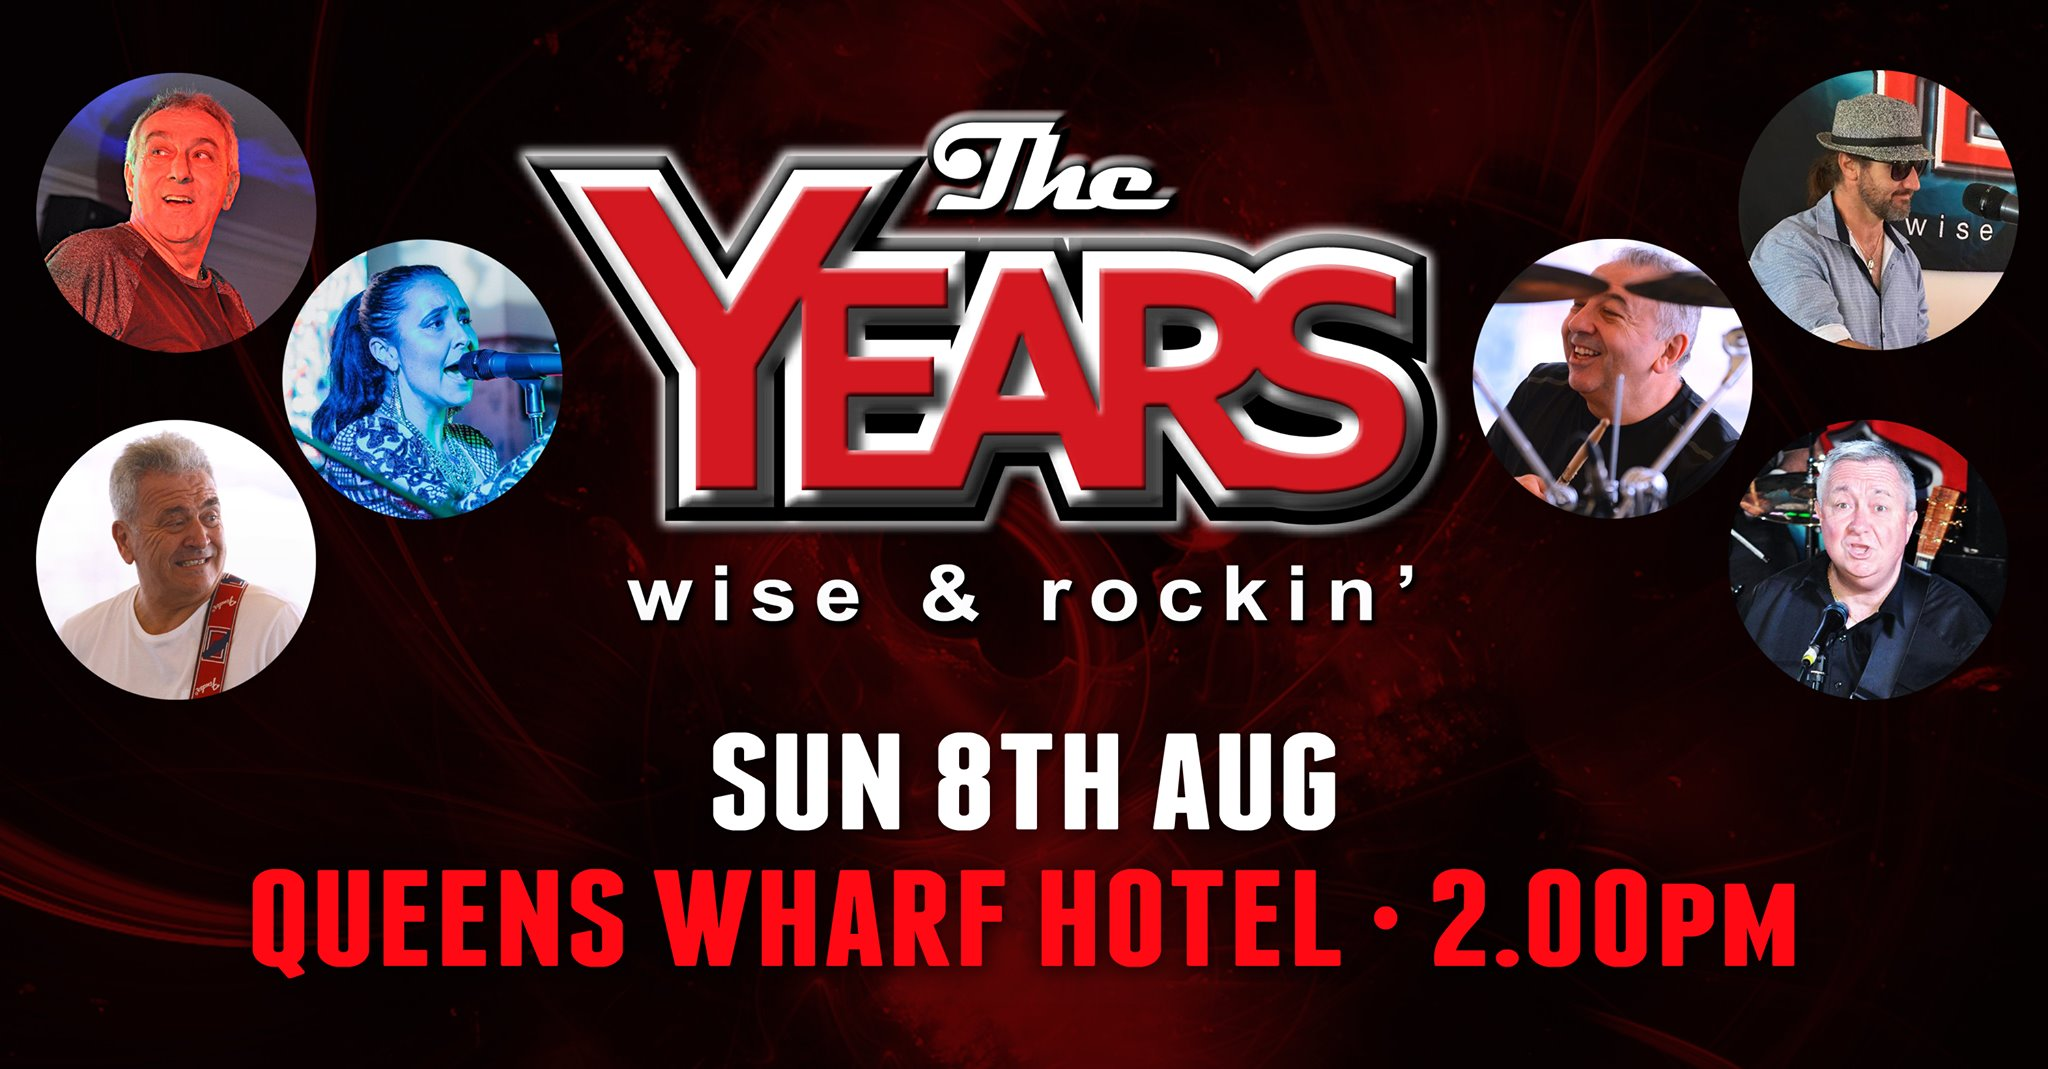 The Years at Queens Wharf Hotel